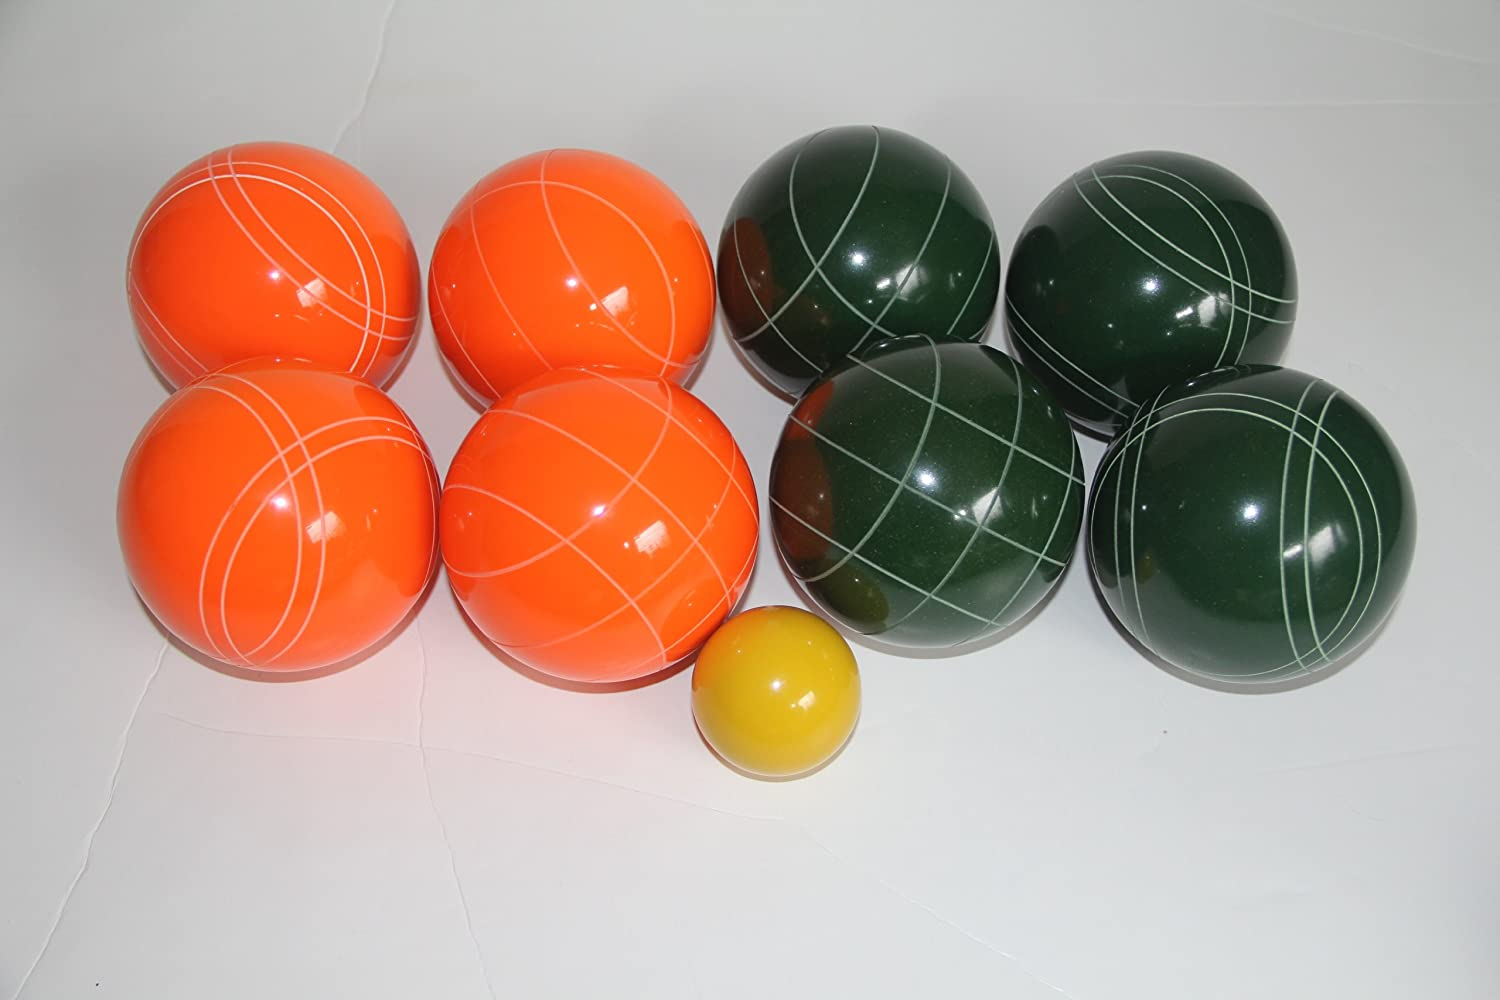 Premium Quality EPCO Tournament Bocce Set - 110mm Orange and Green Bocce Ball...